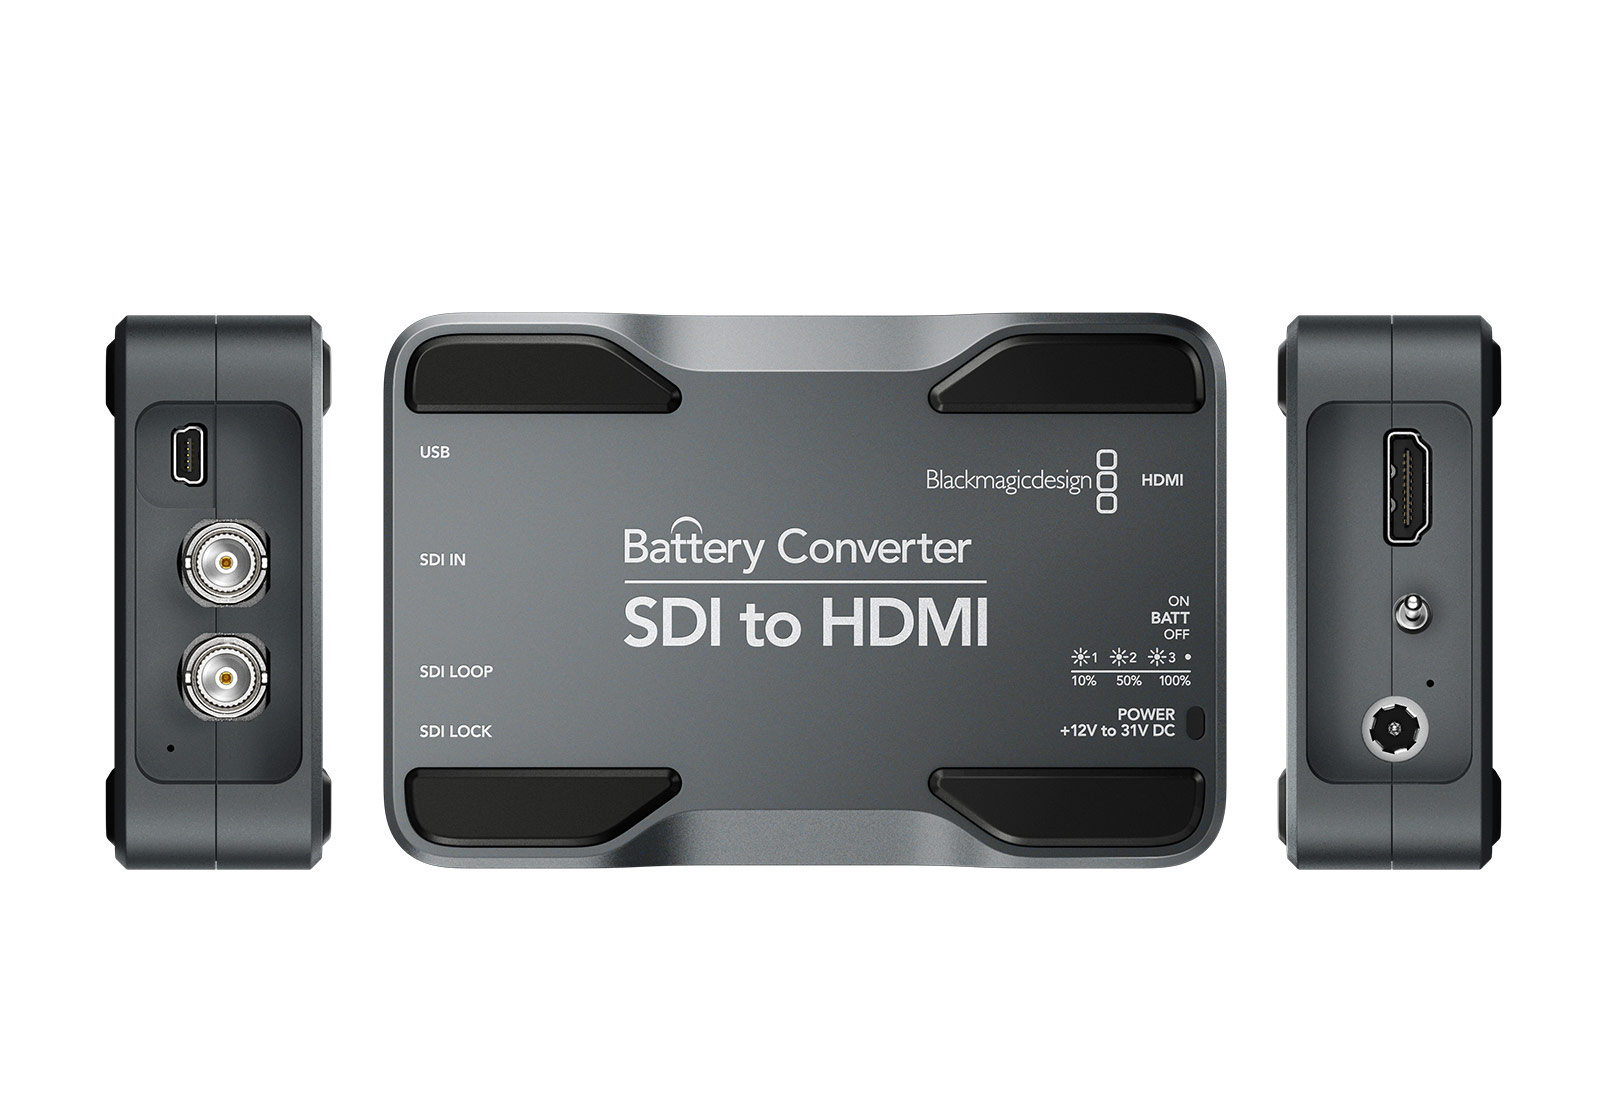 BLACKMAGIC BATTERY CONVERTER SDI to HDMI (BM-CONVBATT/SH)